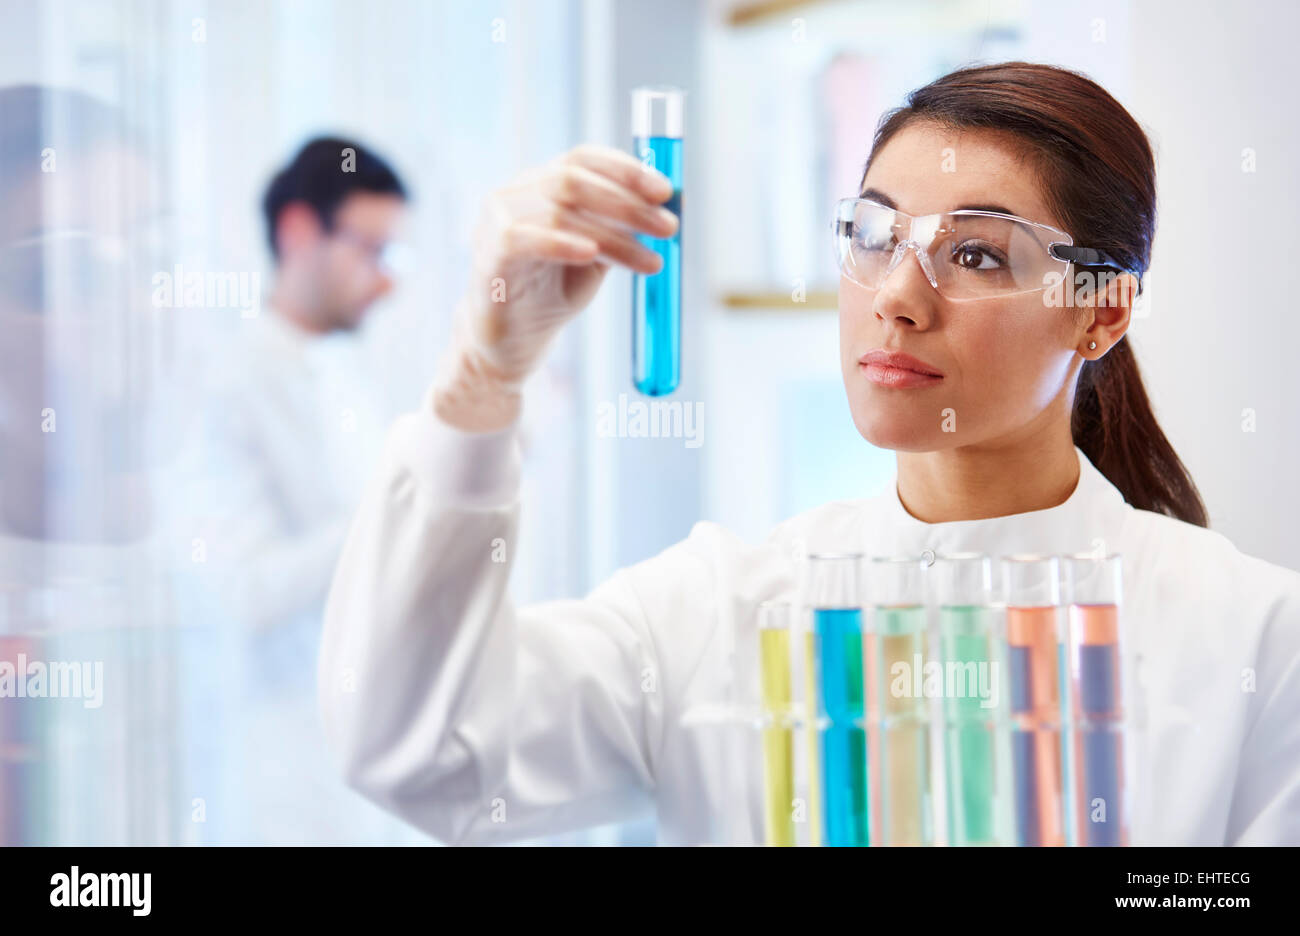 Woman in laboratory looking at vial with blue fluid - Stock Image